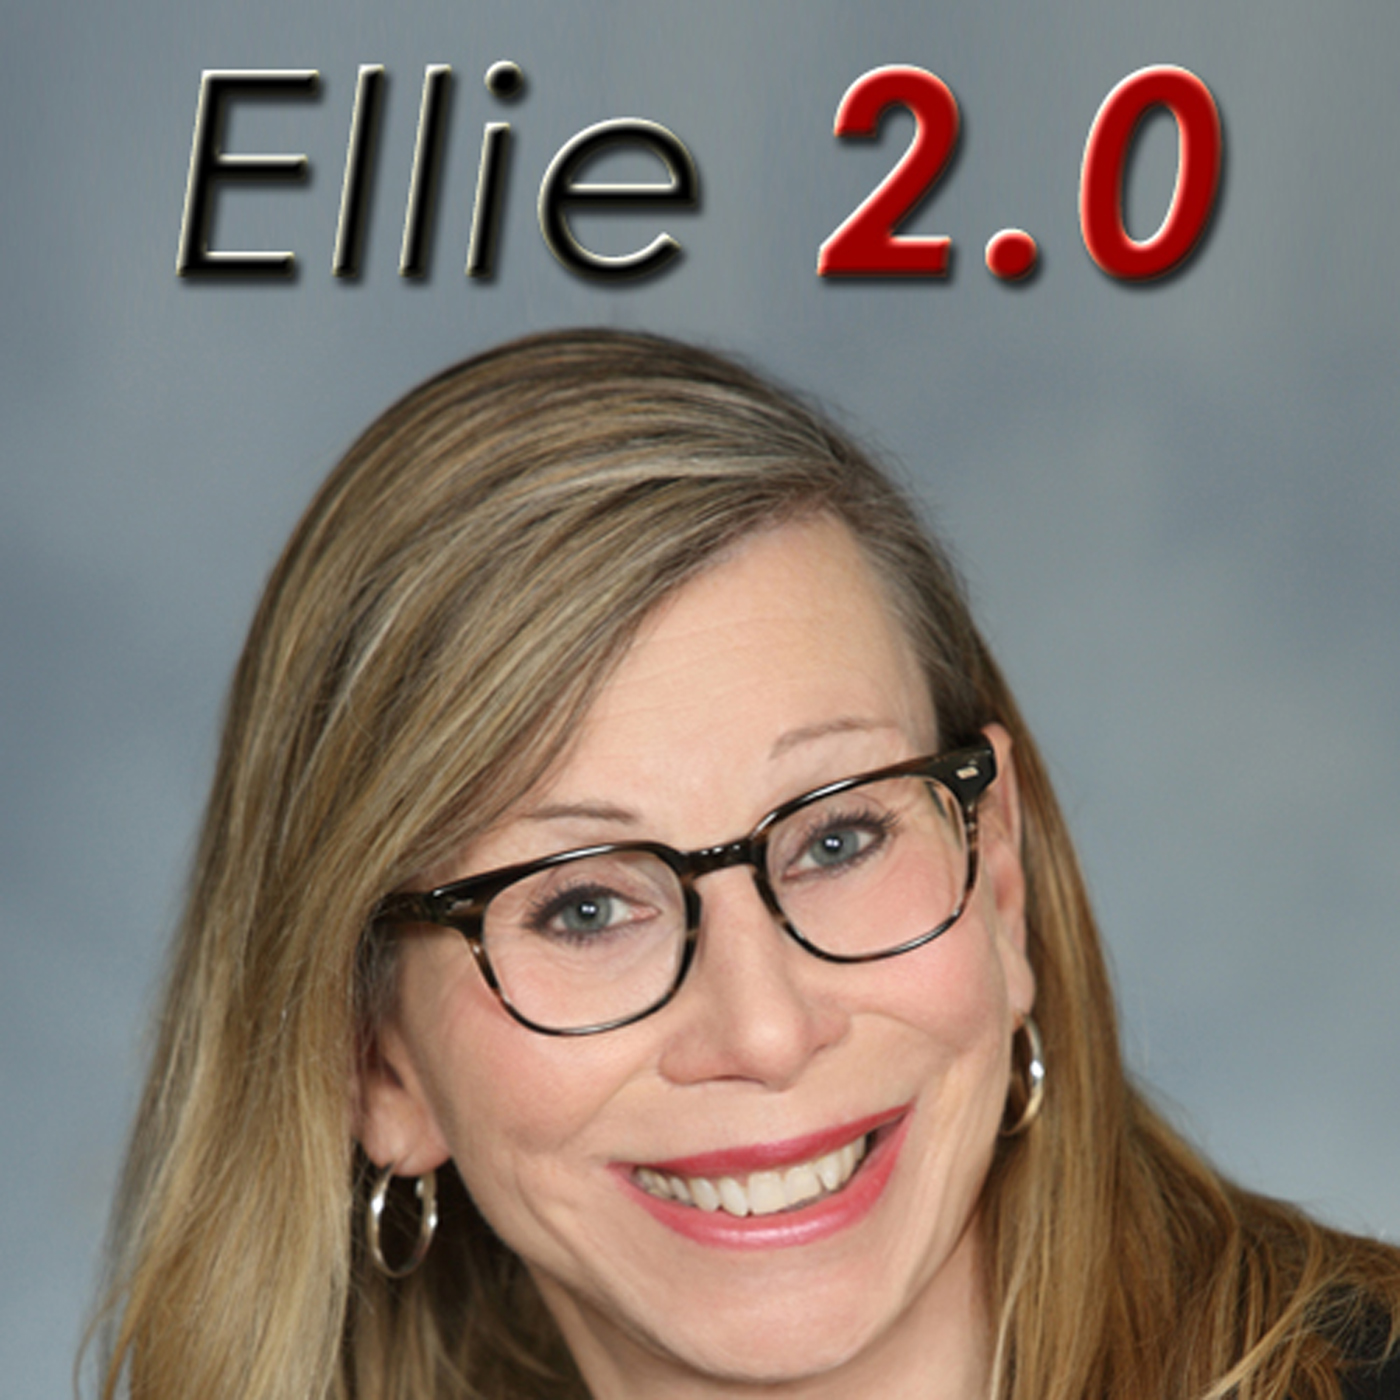 Ellie 2.0 Radio - AM950 The Progressive Voice of Minnesota